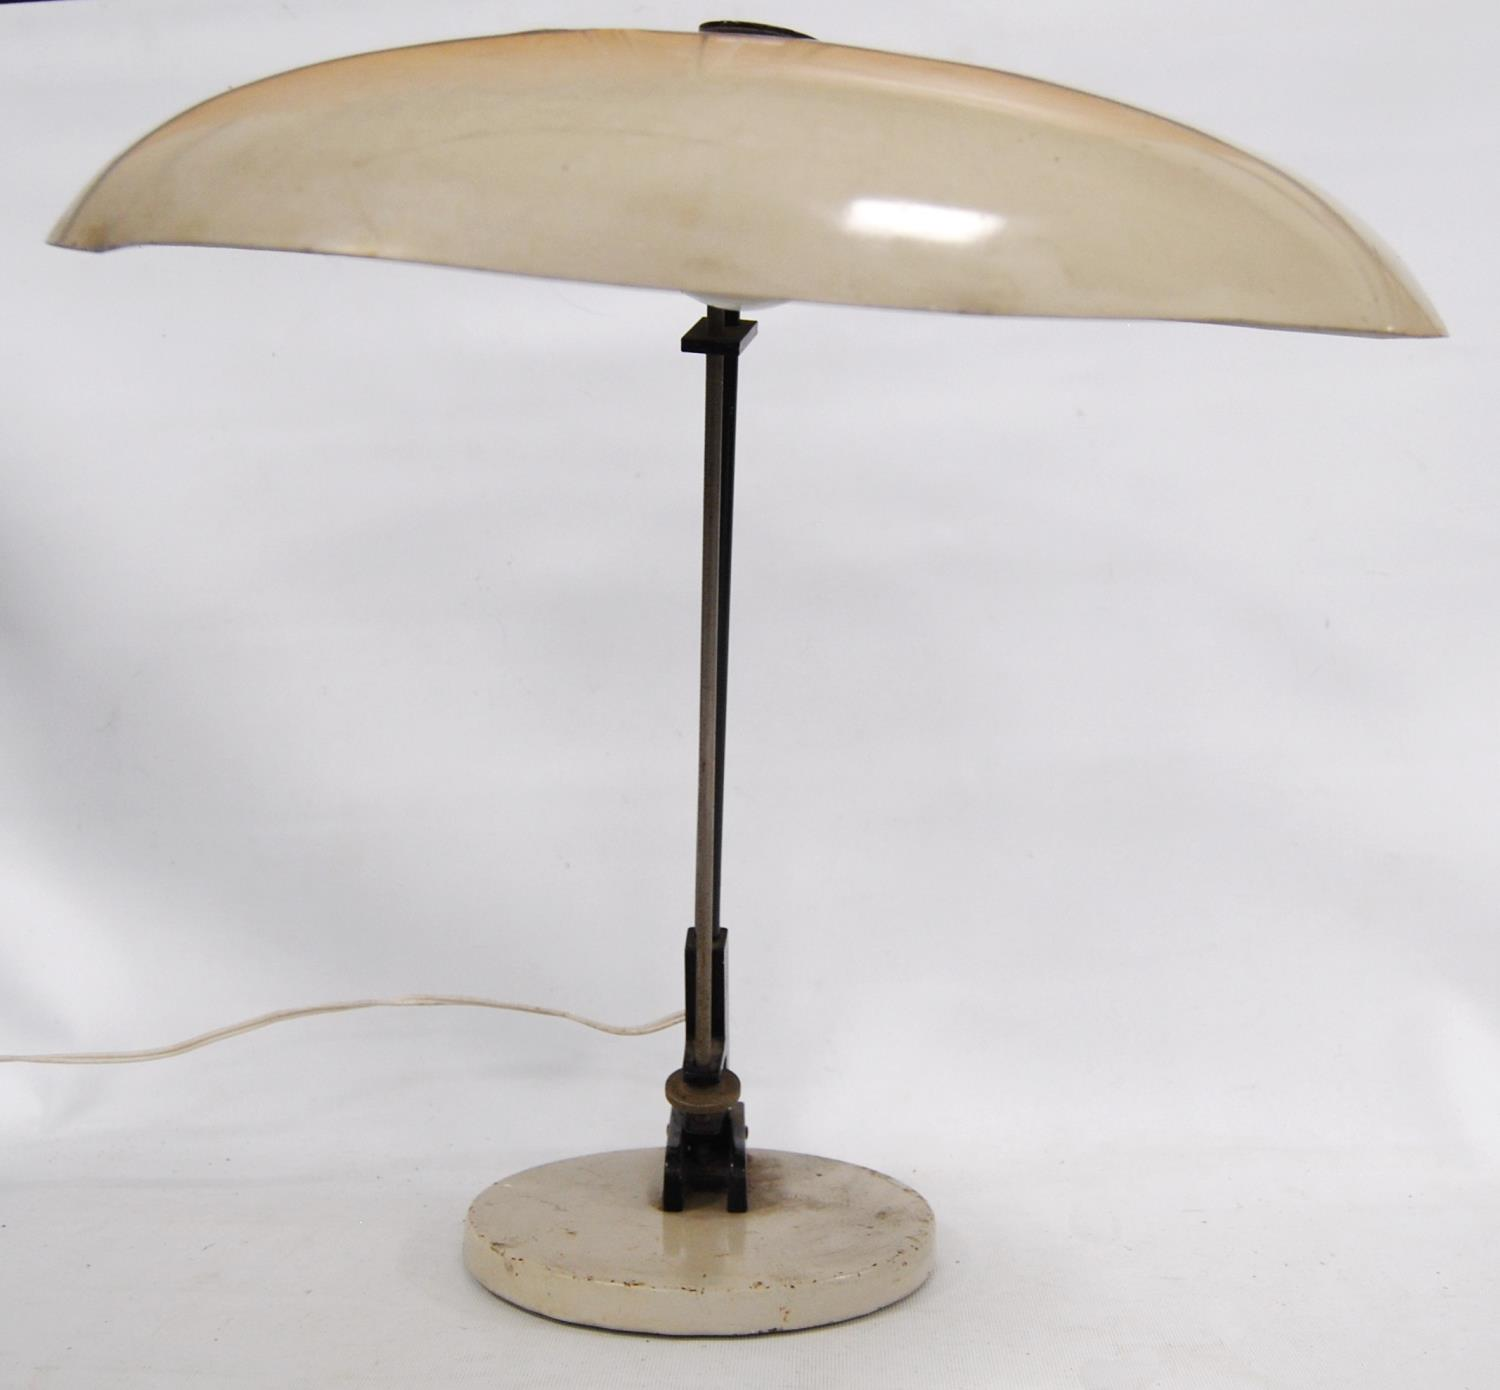 1950s Dutch Nedalo table lamp with enamelled shade, 45cm high. - Image 3 of 4